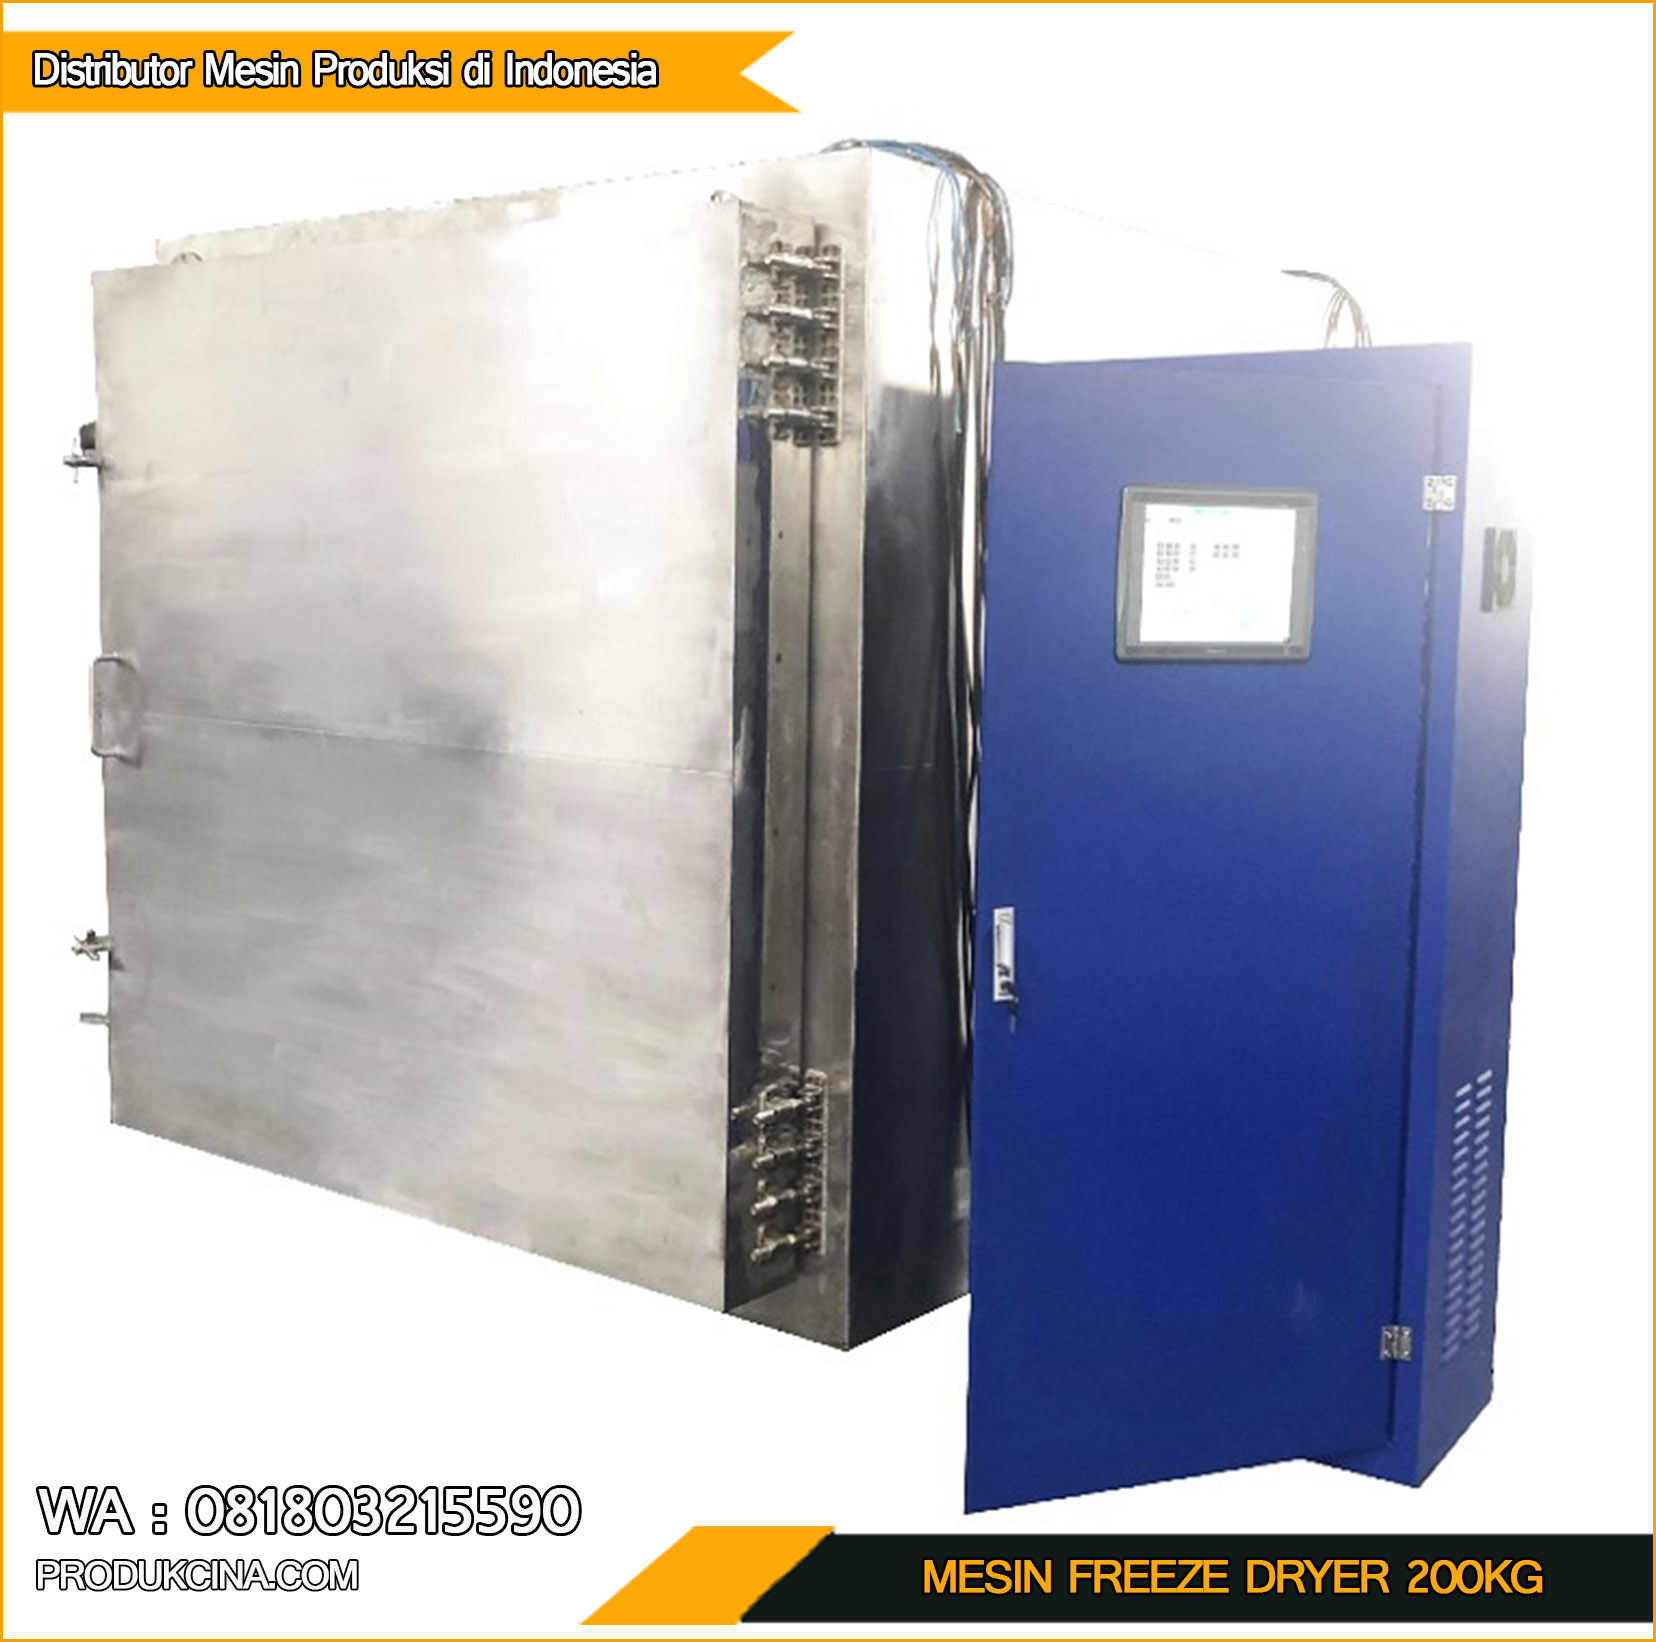 Beli Mesin Freeze Dryer Murah kapasitas 200kg perhari